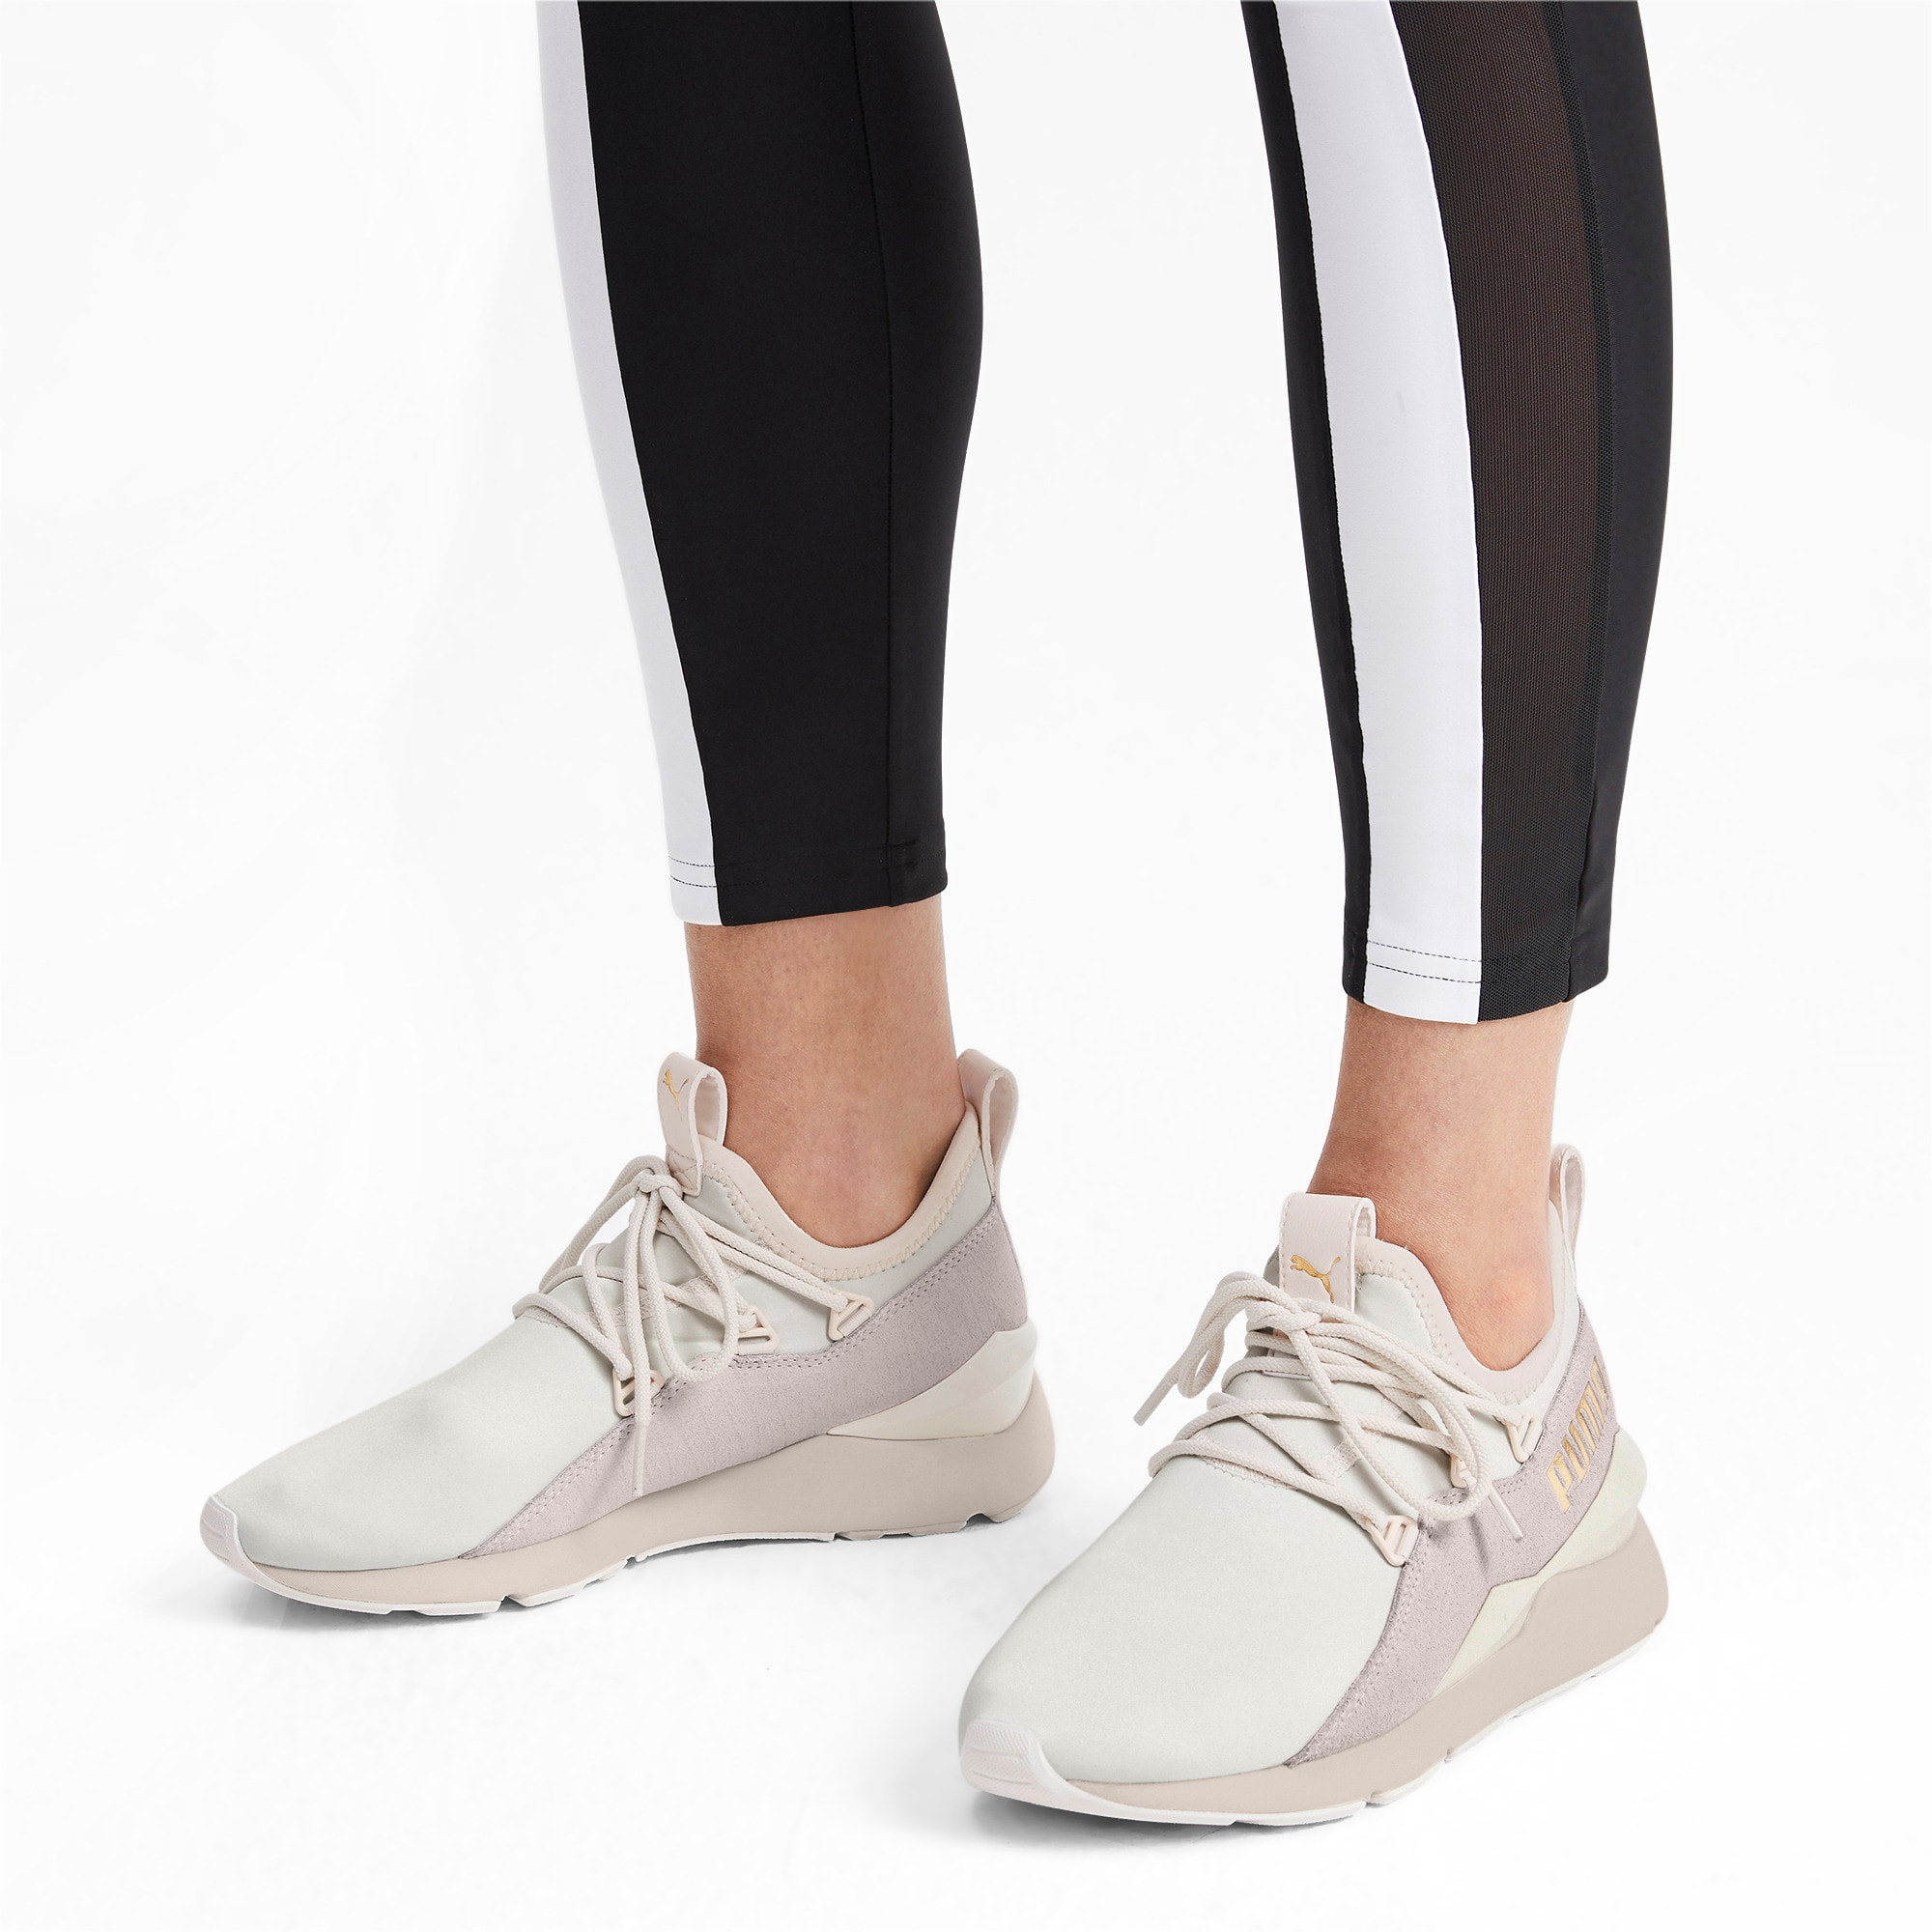 Thumbnail 2 of Muse 2 Metallic Women's Trainers, Pastel Parchment-PTeam Gold, medium-IND